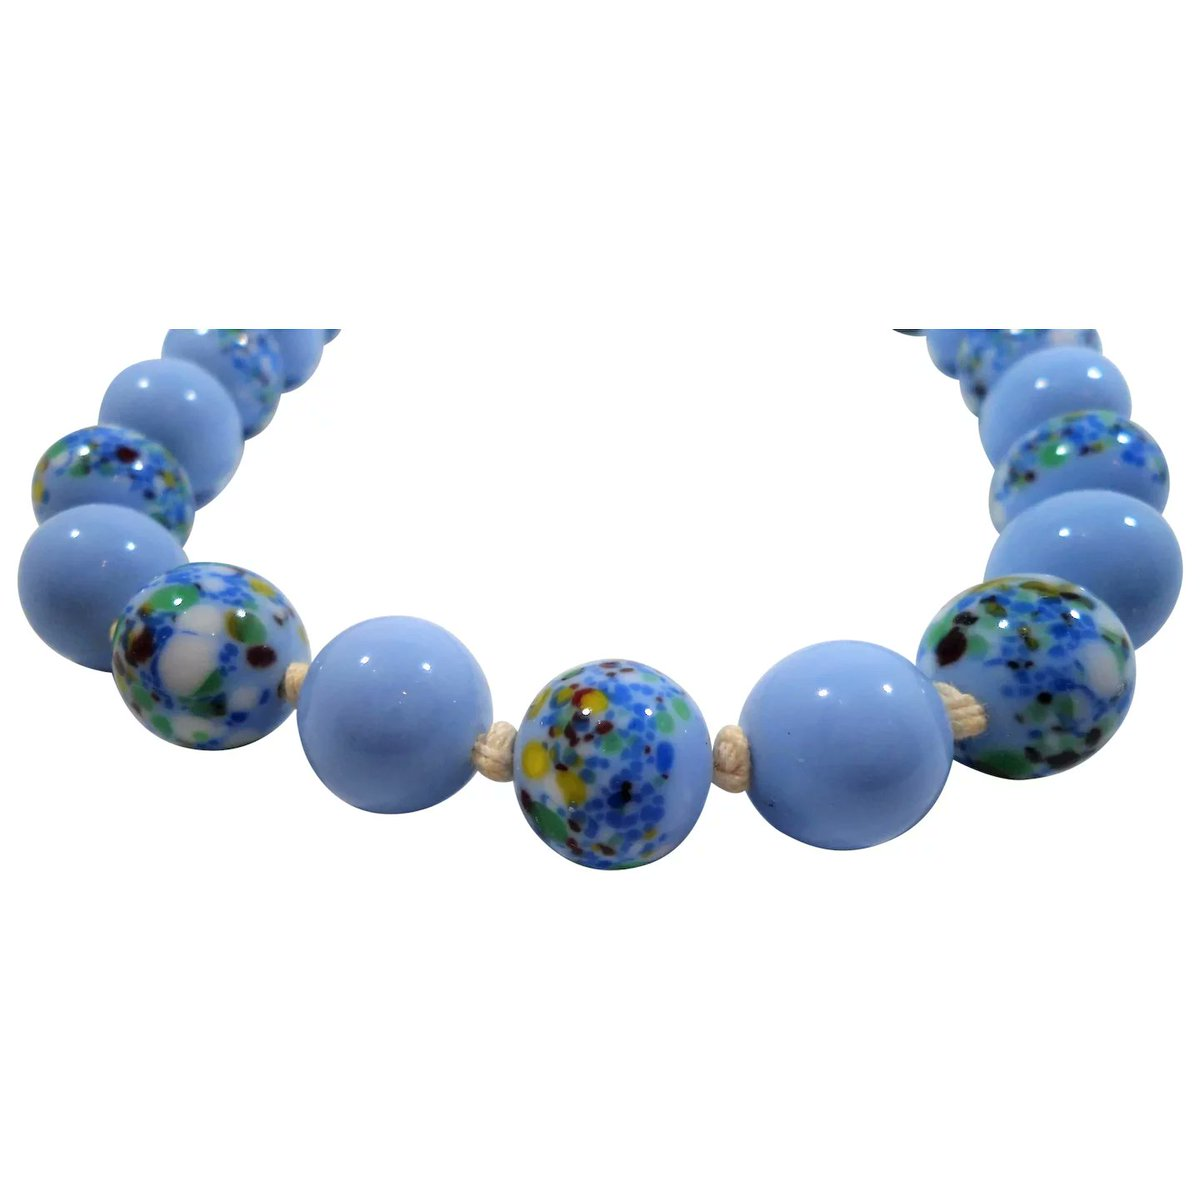 Periwinkle Blue Art Glass Beaded Choker Necklace #rubylane #vintage #jewelry #glass #beads #necklace #giftideas #treatmyself #treatyourself #fashionista #givevintage